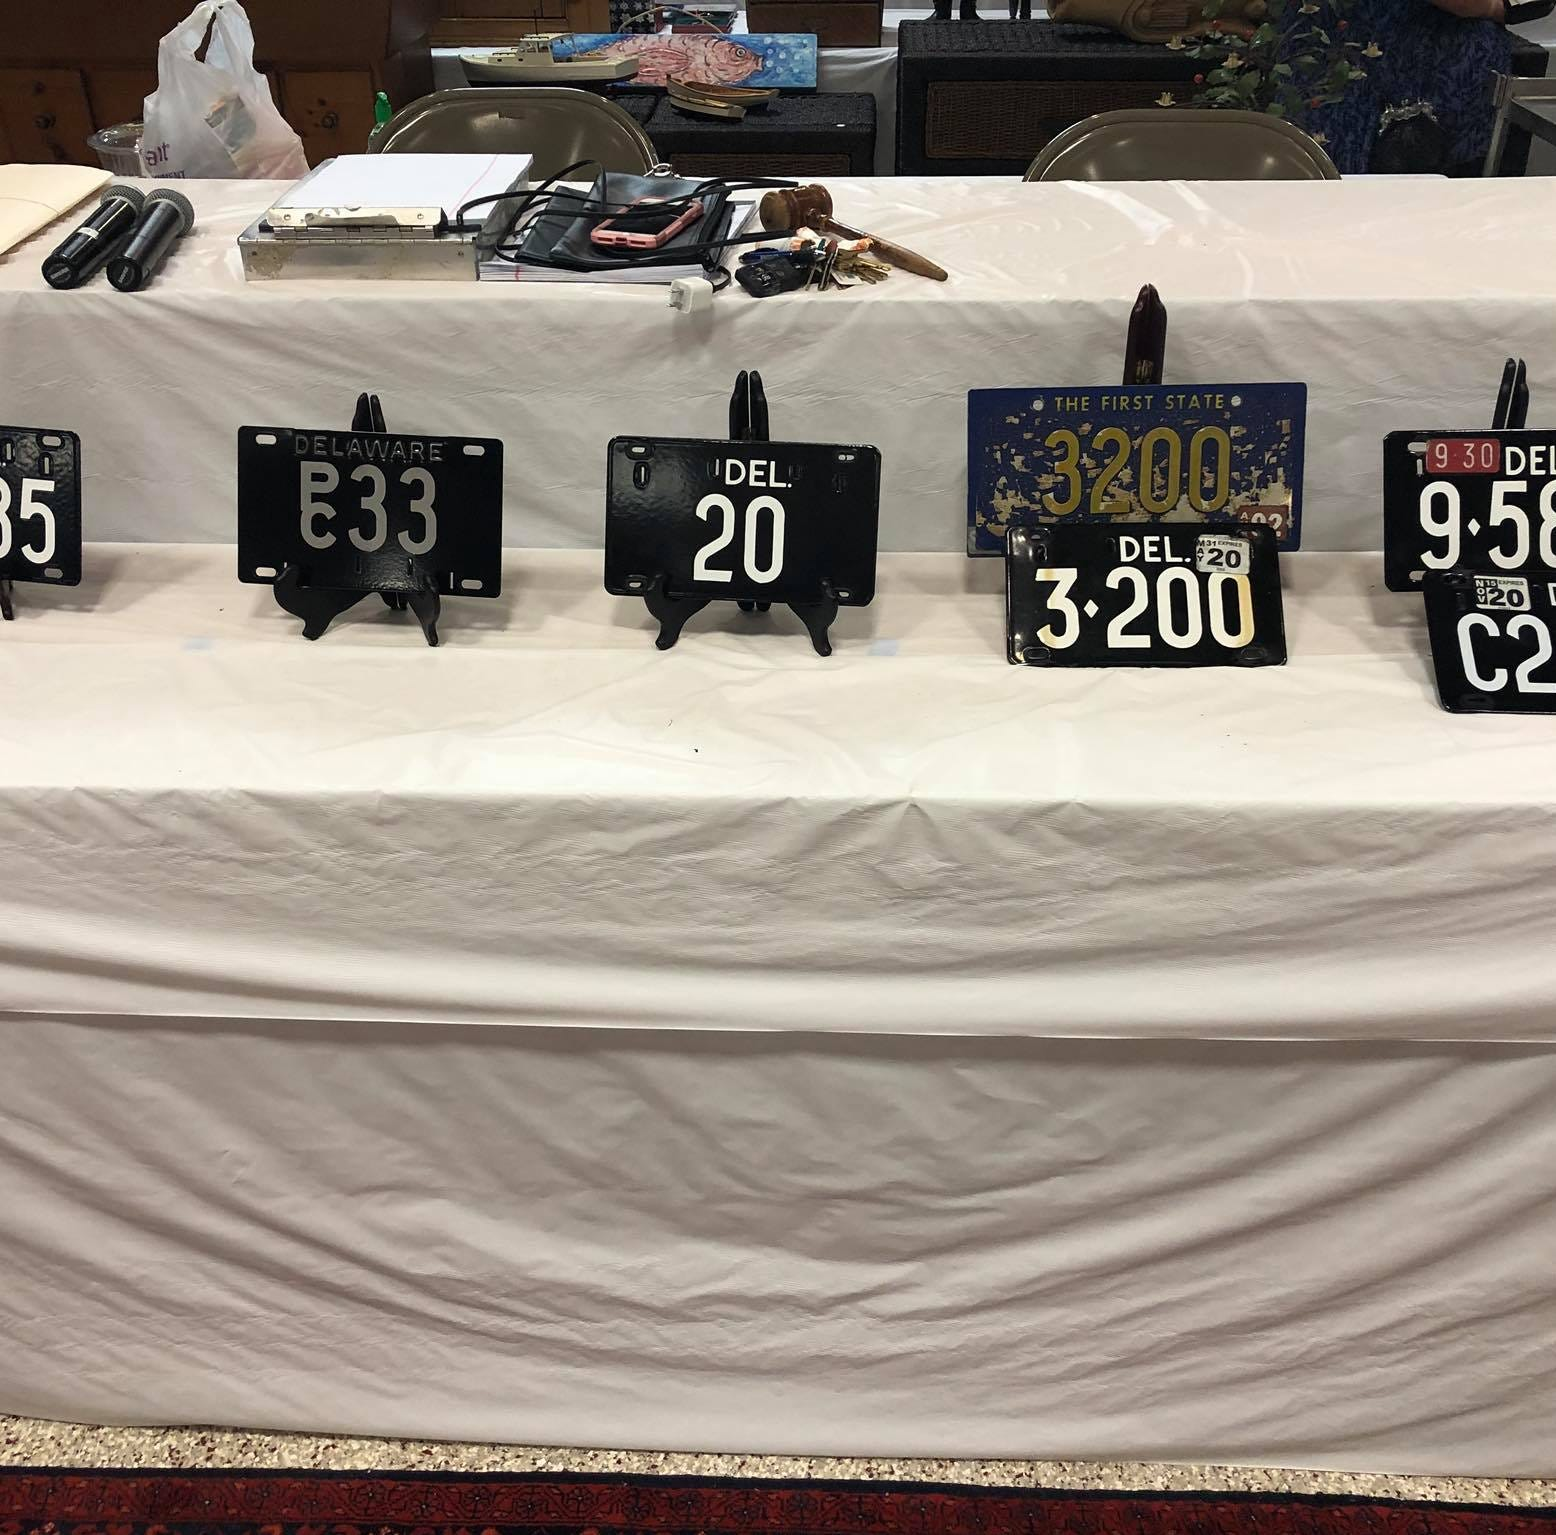 Low-digit Delaware tag 20 goes for six digits at Rehoboth auction